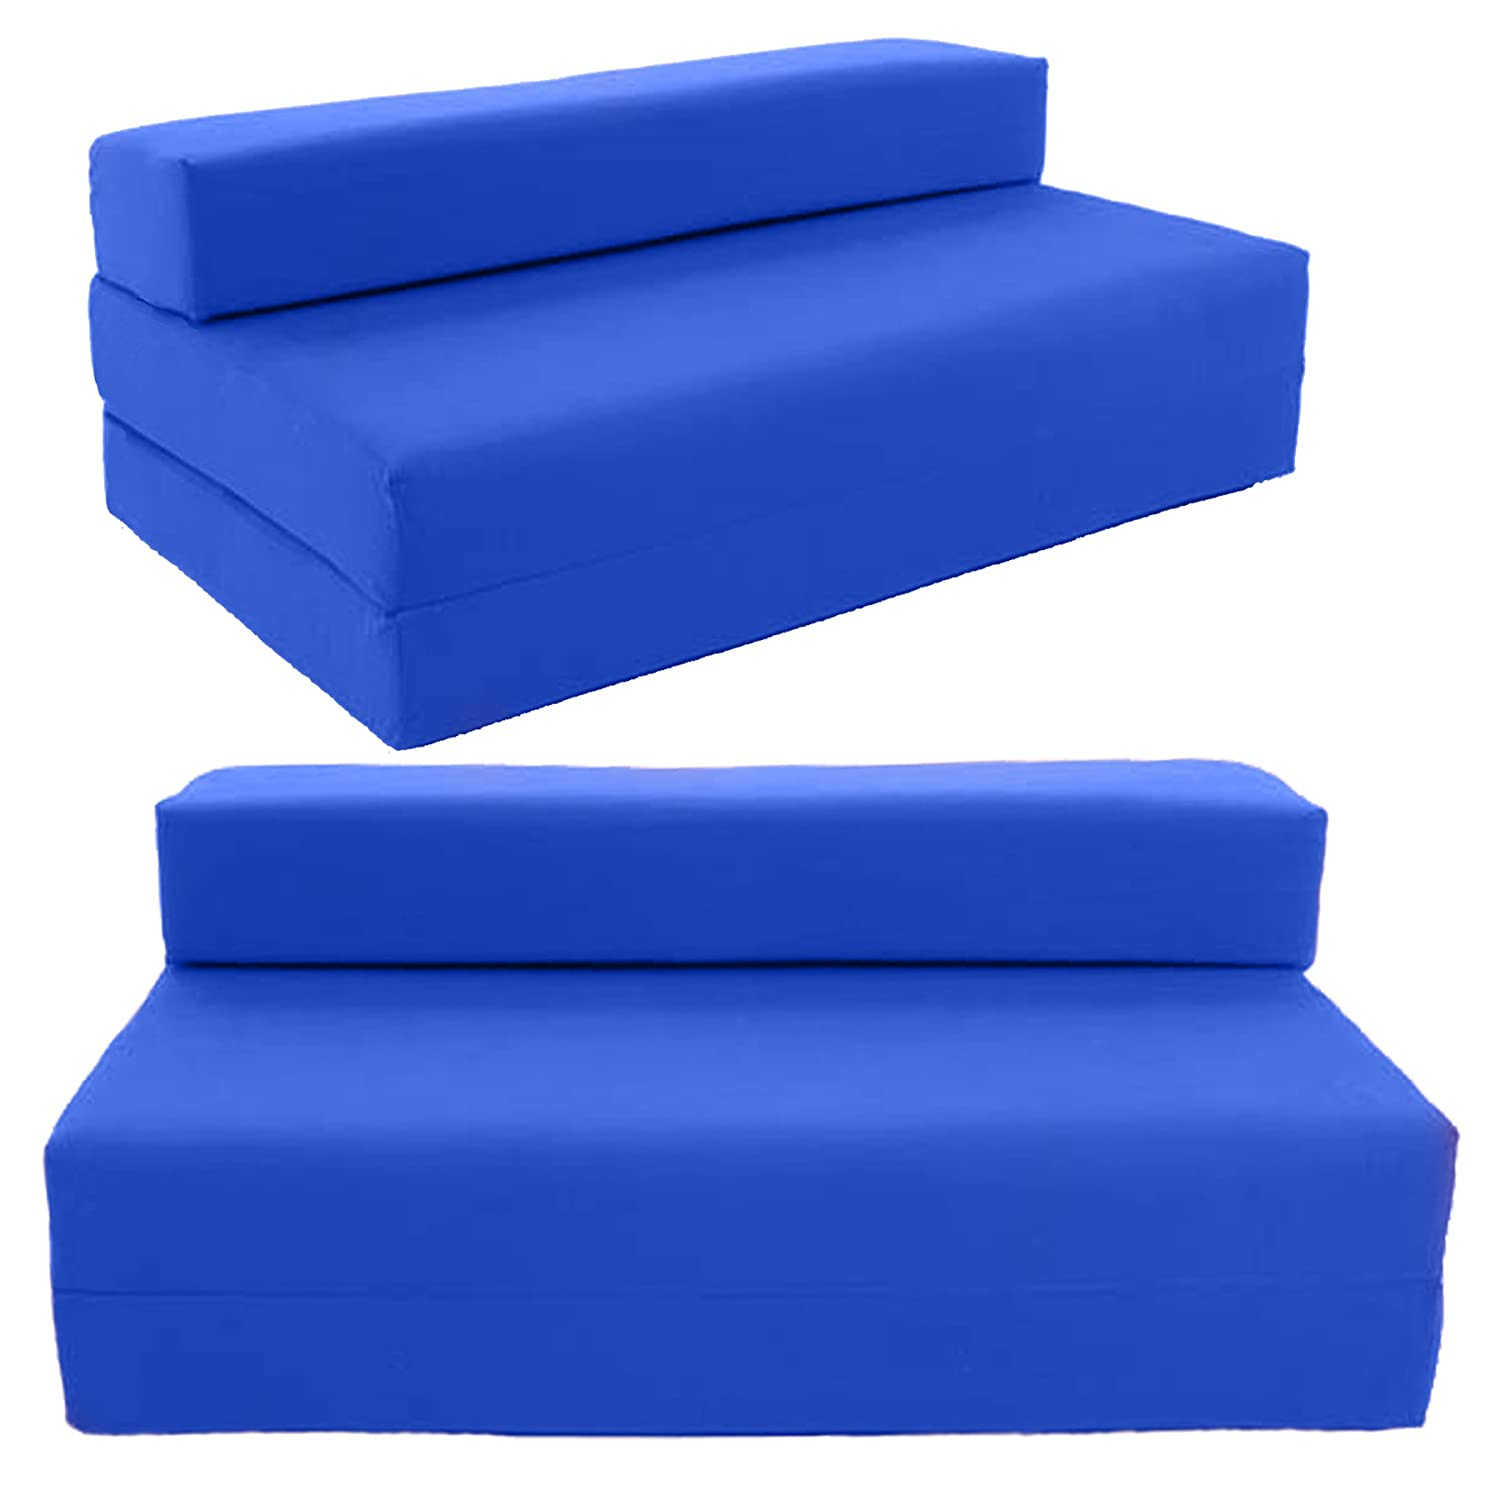 Double Sofa bed Chair bed futon Chairbed by Gilda Royal Blue